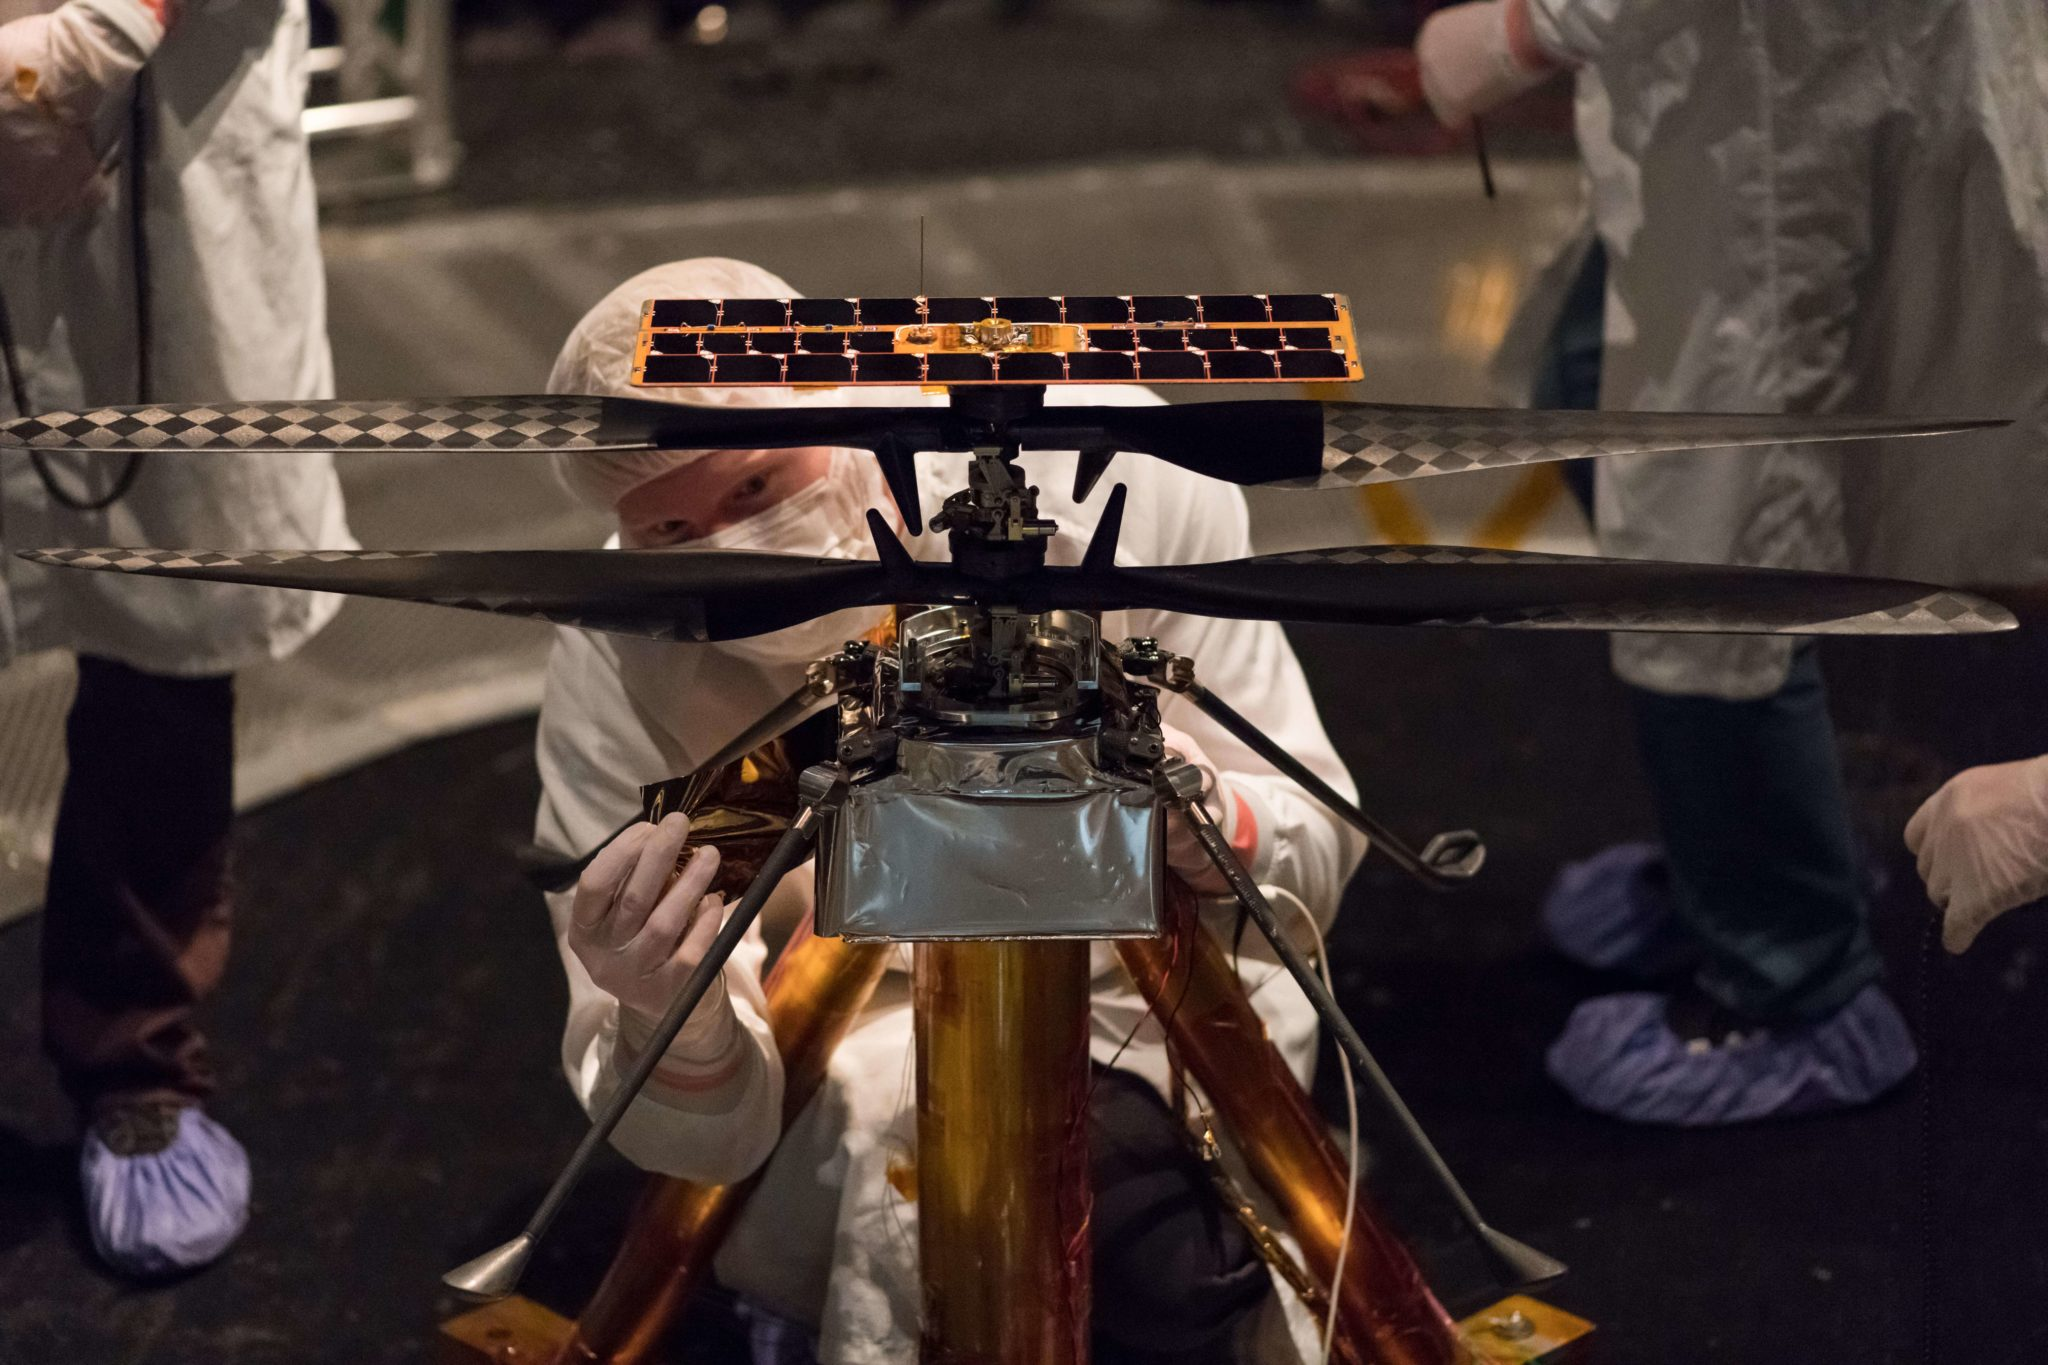 NASA's Mars Helicopter Passes First Test Flight With Flying Colors